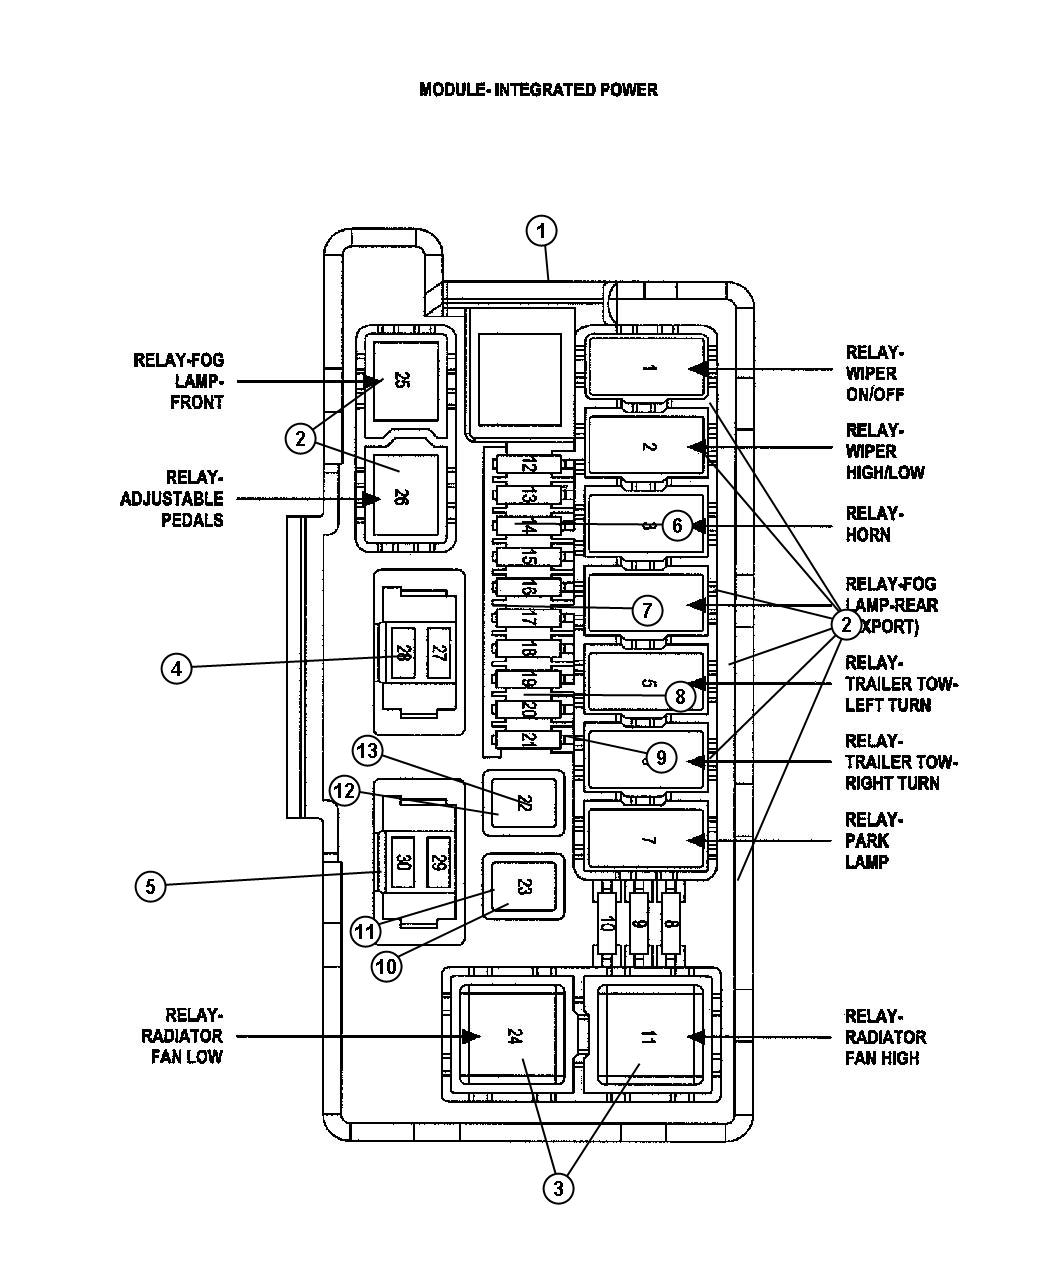 99 jeep cherokee wiring harness with Showassembly on Dodge Dakota Wiring Diagrams moreover Dodge Durango 2004 Engine Diagram as well respond as well Daewoo 2 0 Photo 17 further RepairGuideContent.